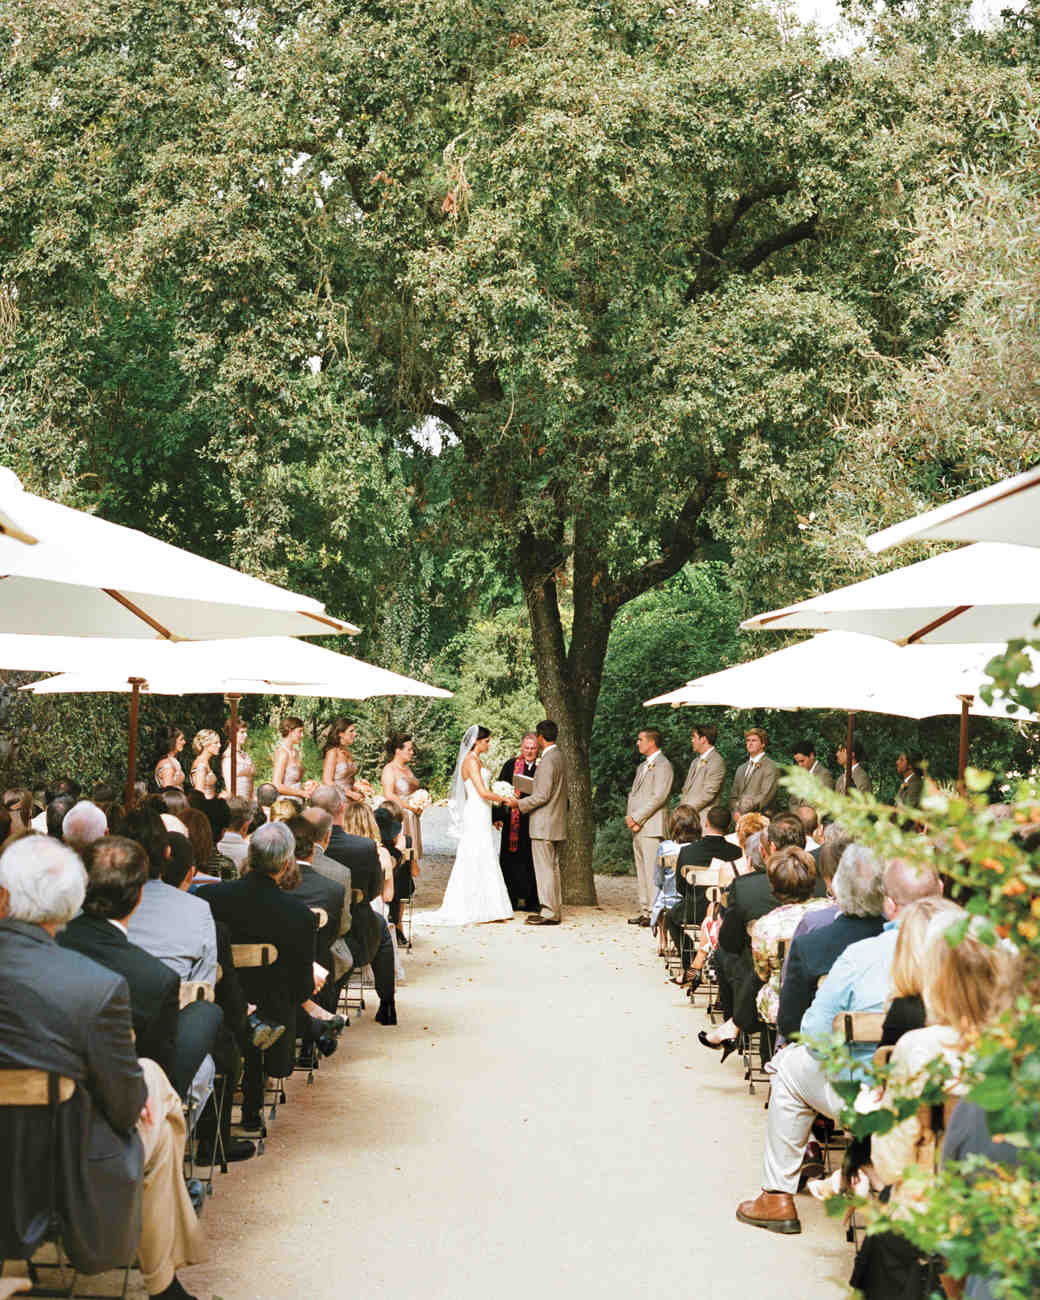 A Romantic Rustic Wedding At Winery In California